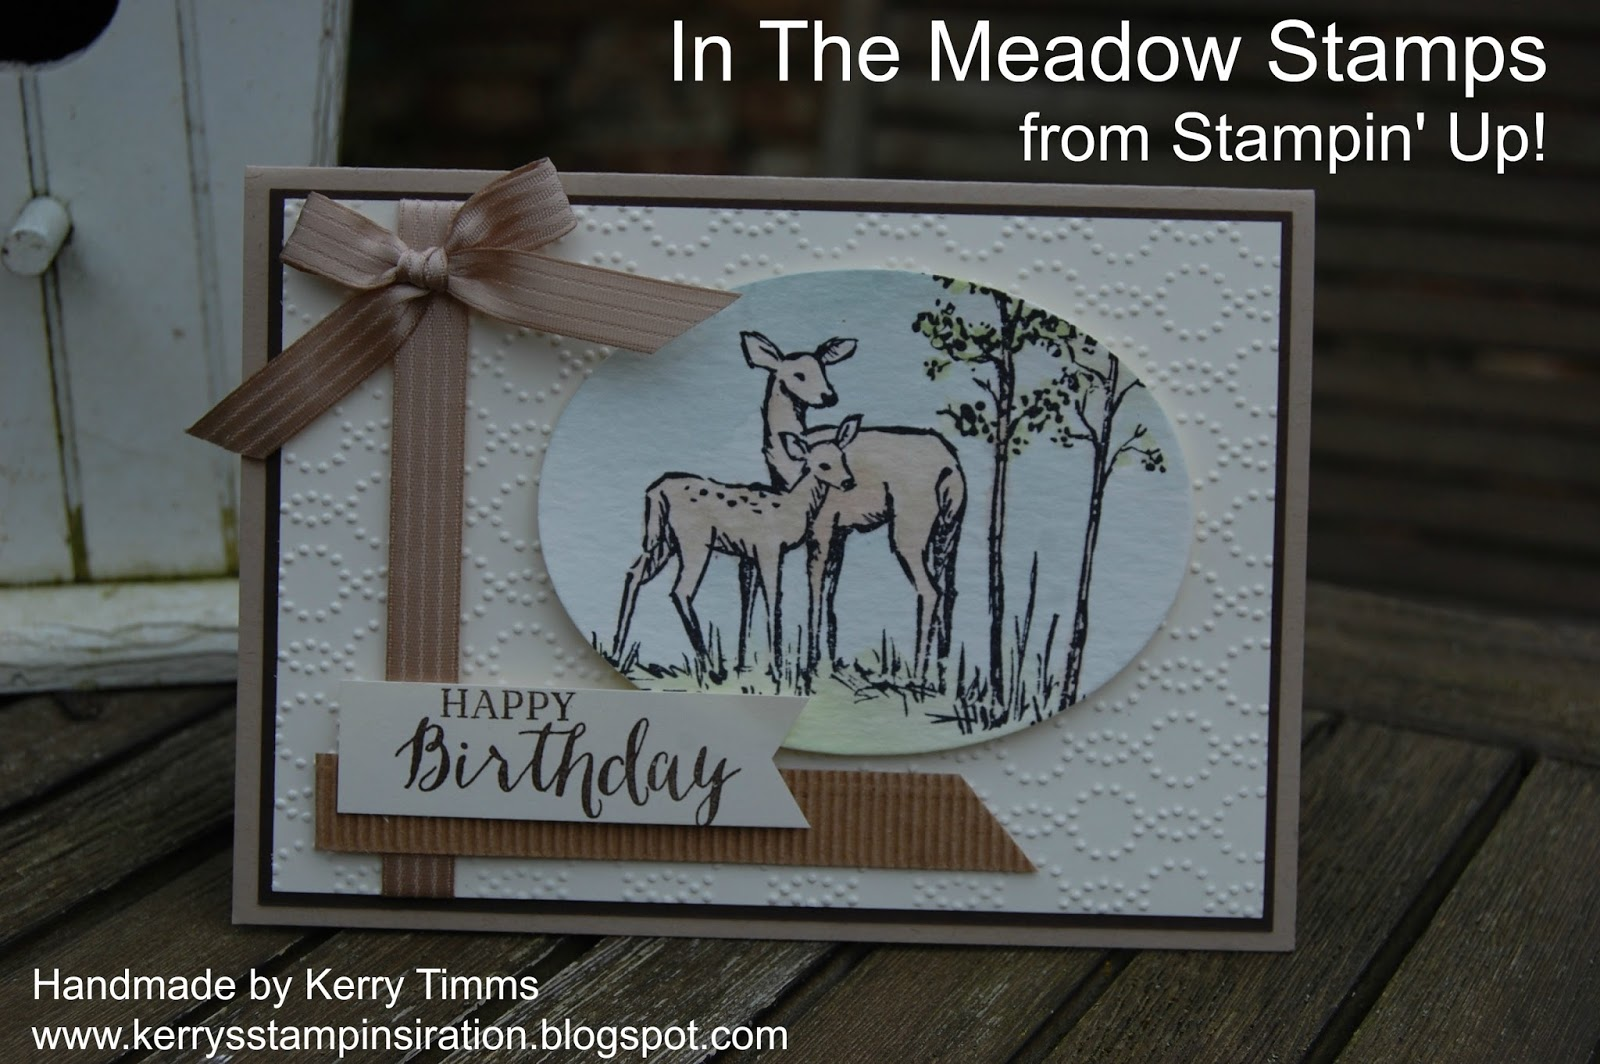 Cake Making Classes Gloucester : Stampin spiration: More from In The Meadow